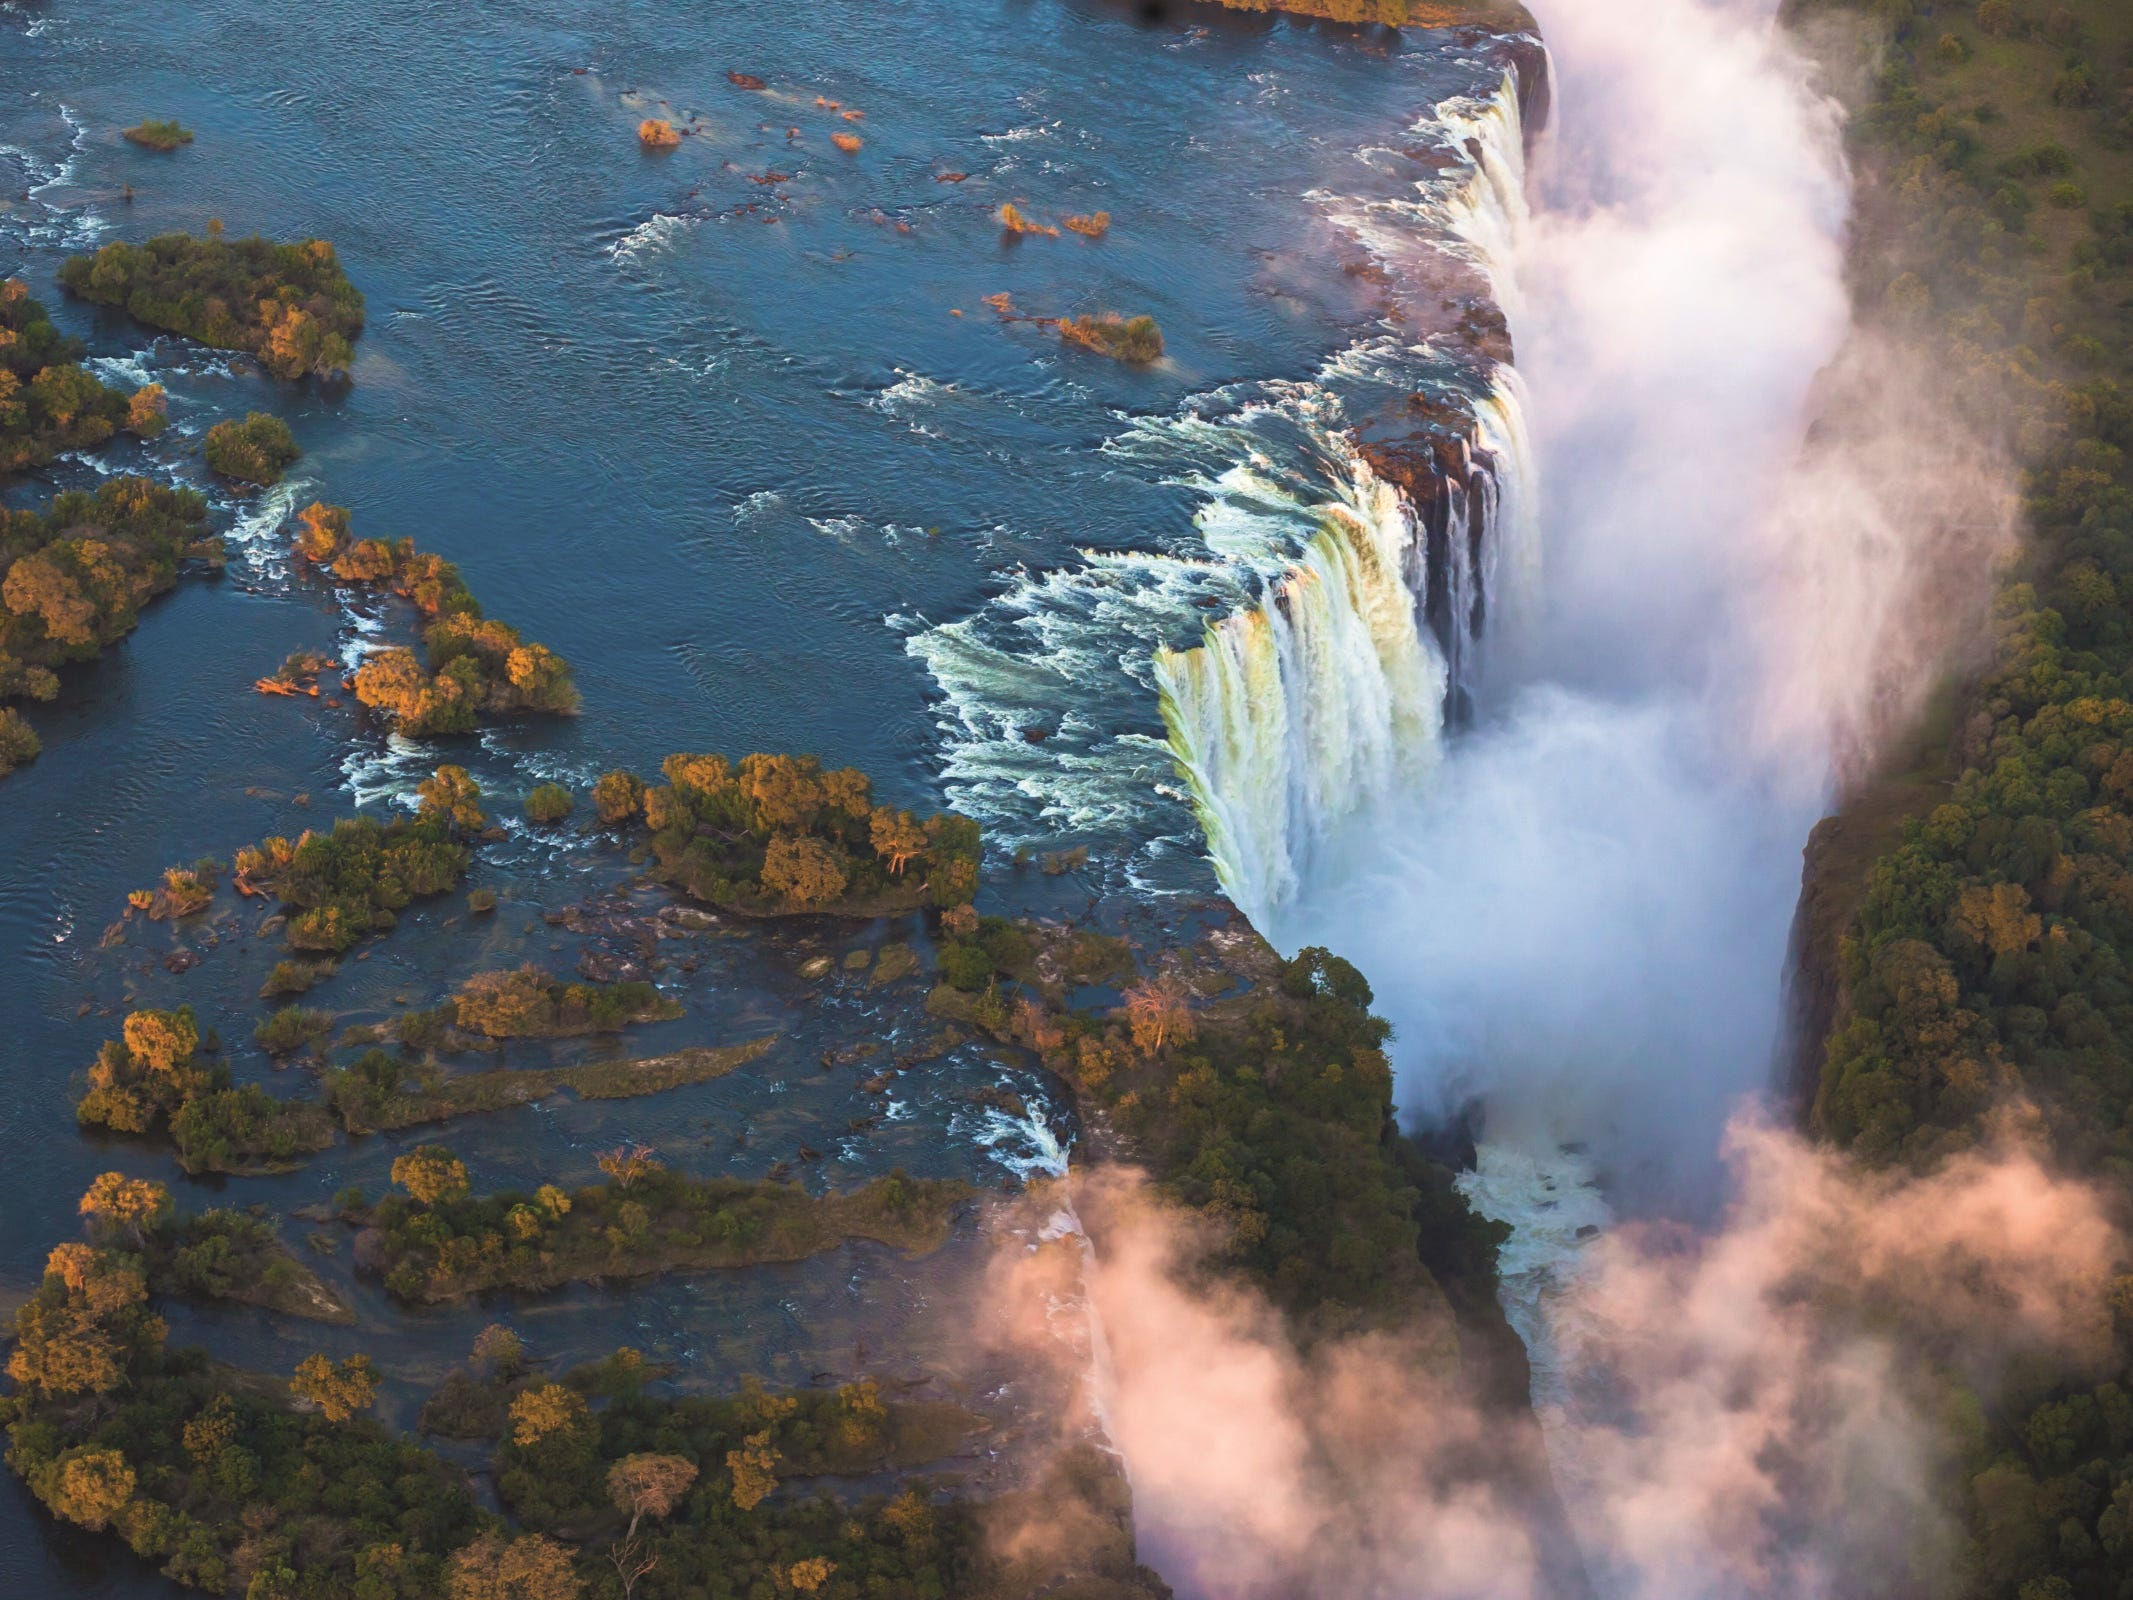 No. 3 on the list of top 10 countries to visit in 2019 is Zimbabwe. As the world gets ready to re-engage with Zimbabwe, the country readies itself to reclaim its mantle as Africa's most tourist-friendly destination.